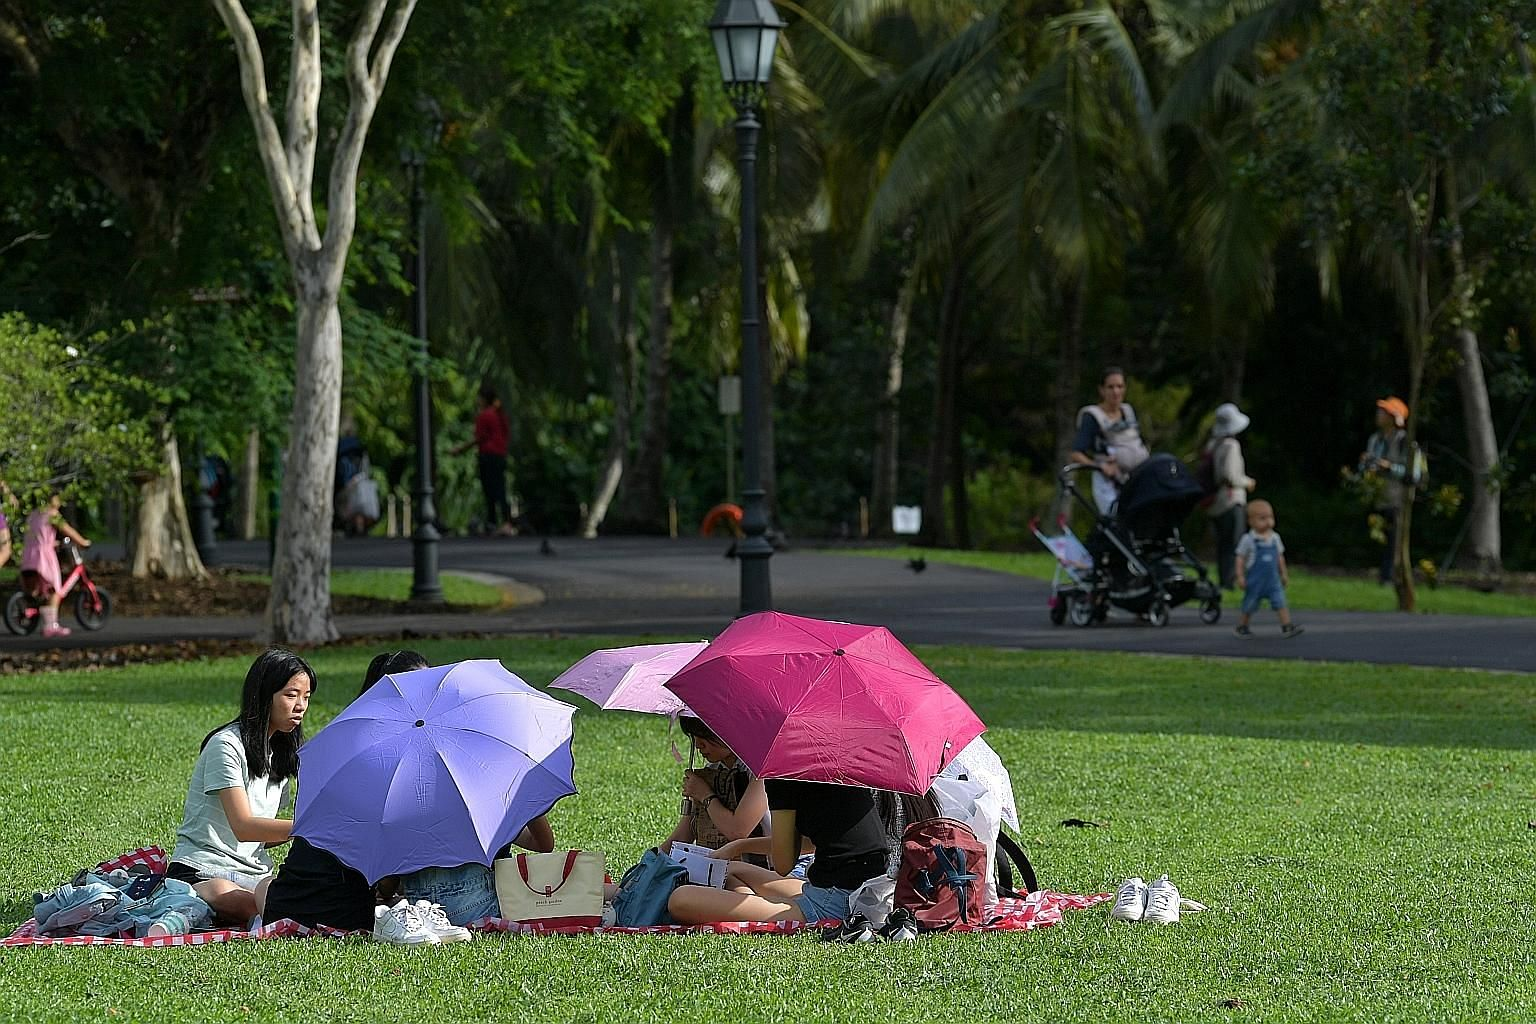 People having a picnic at the Singapore Botanic Gardens in December. There will be more warm weather ahead this month, with the daily temperature on most days expected to be between 24 deg C and 34 deg C.